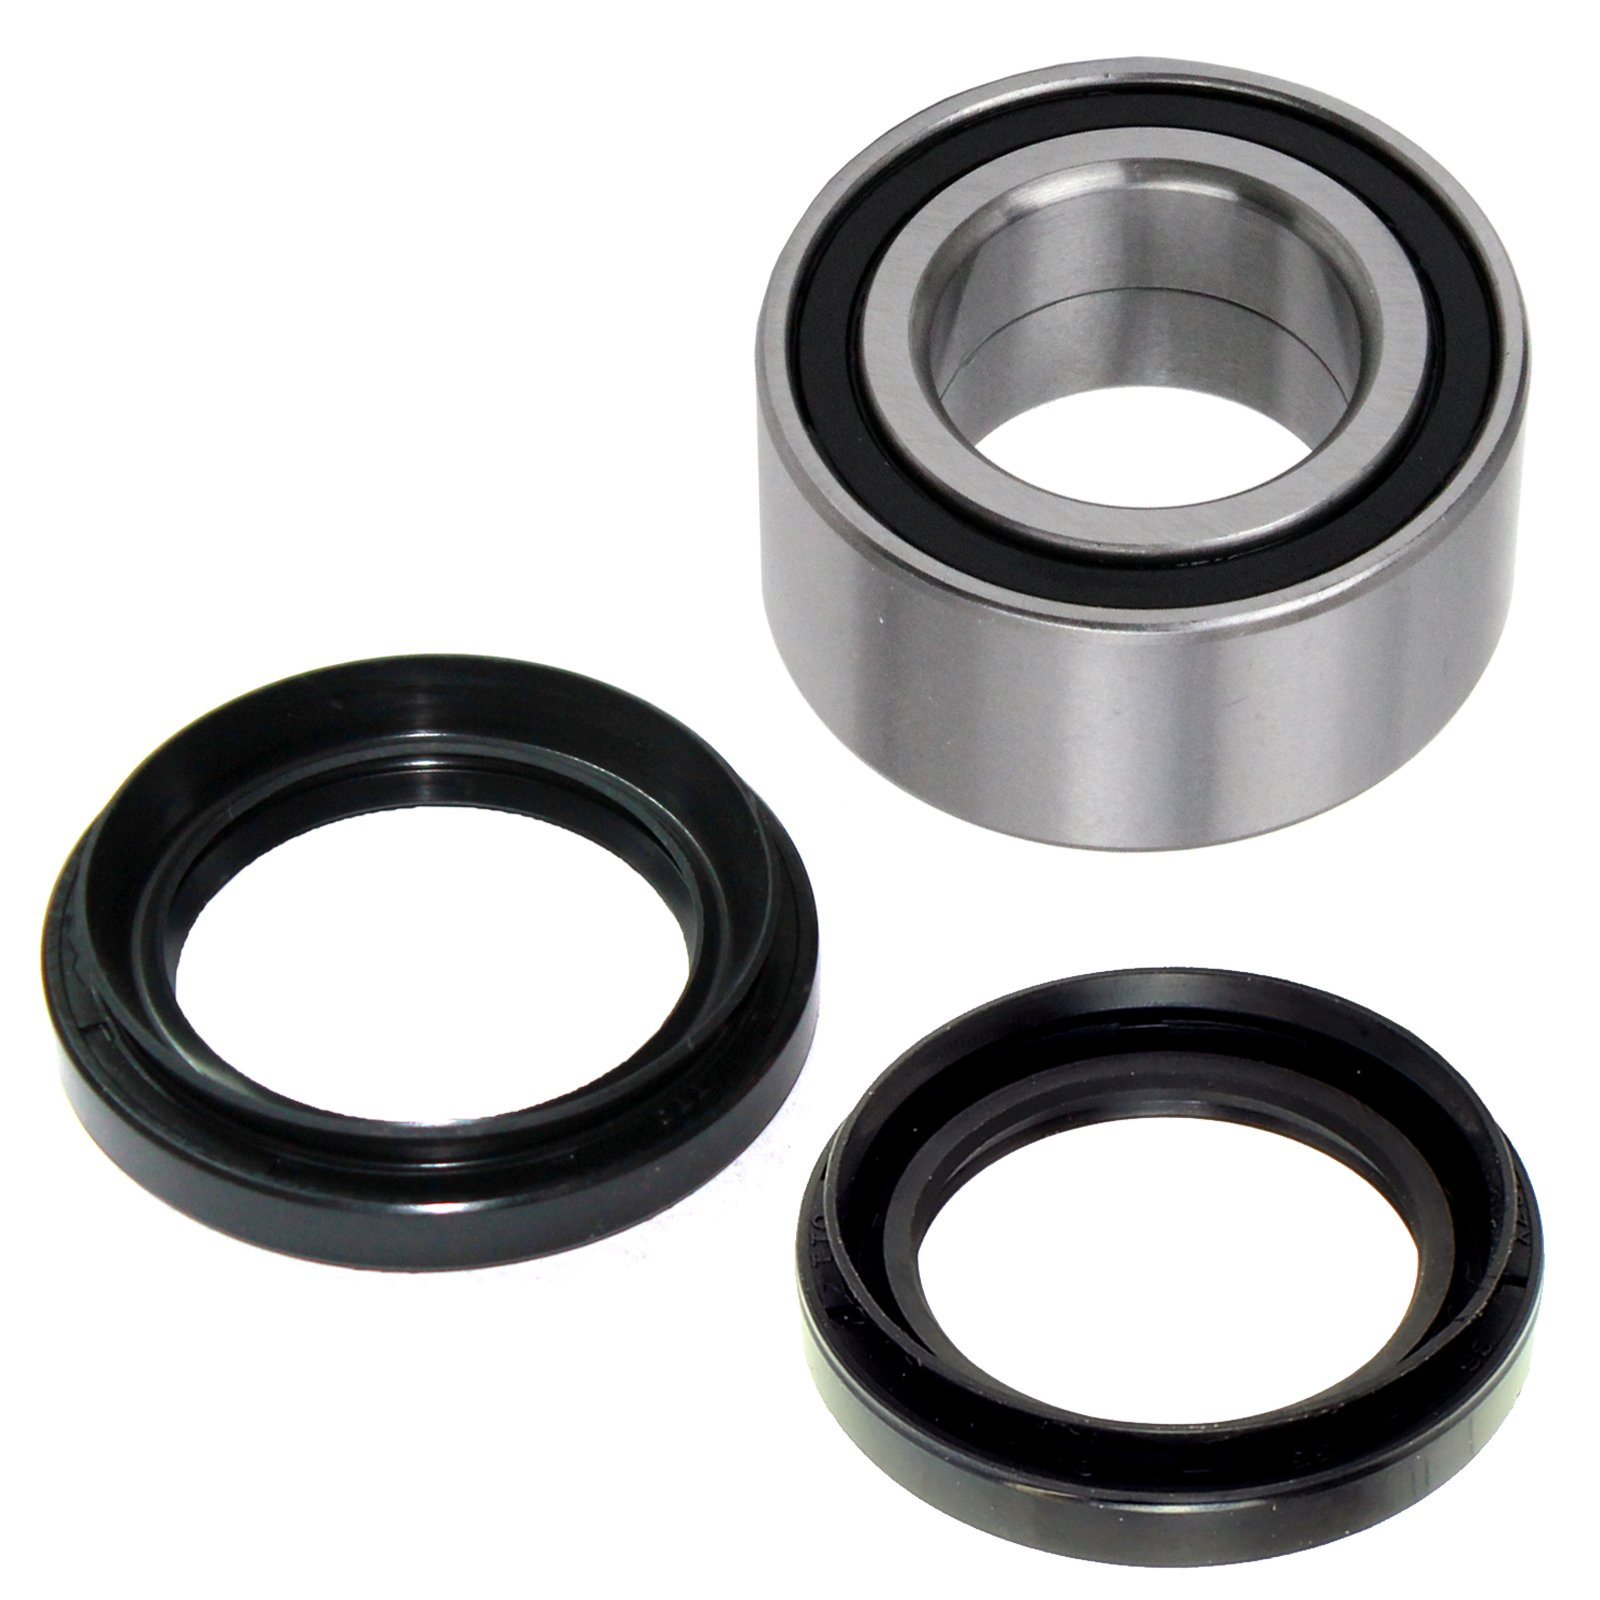 CALTRIC FRONT LEFT RIGHT ARM BALL BEARING SEALS FIT Honda TRX650 RINCON 650 4X4 2003-2005